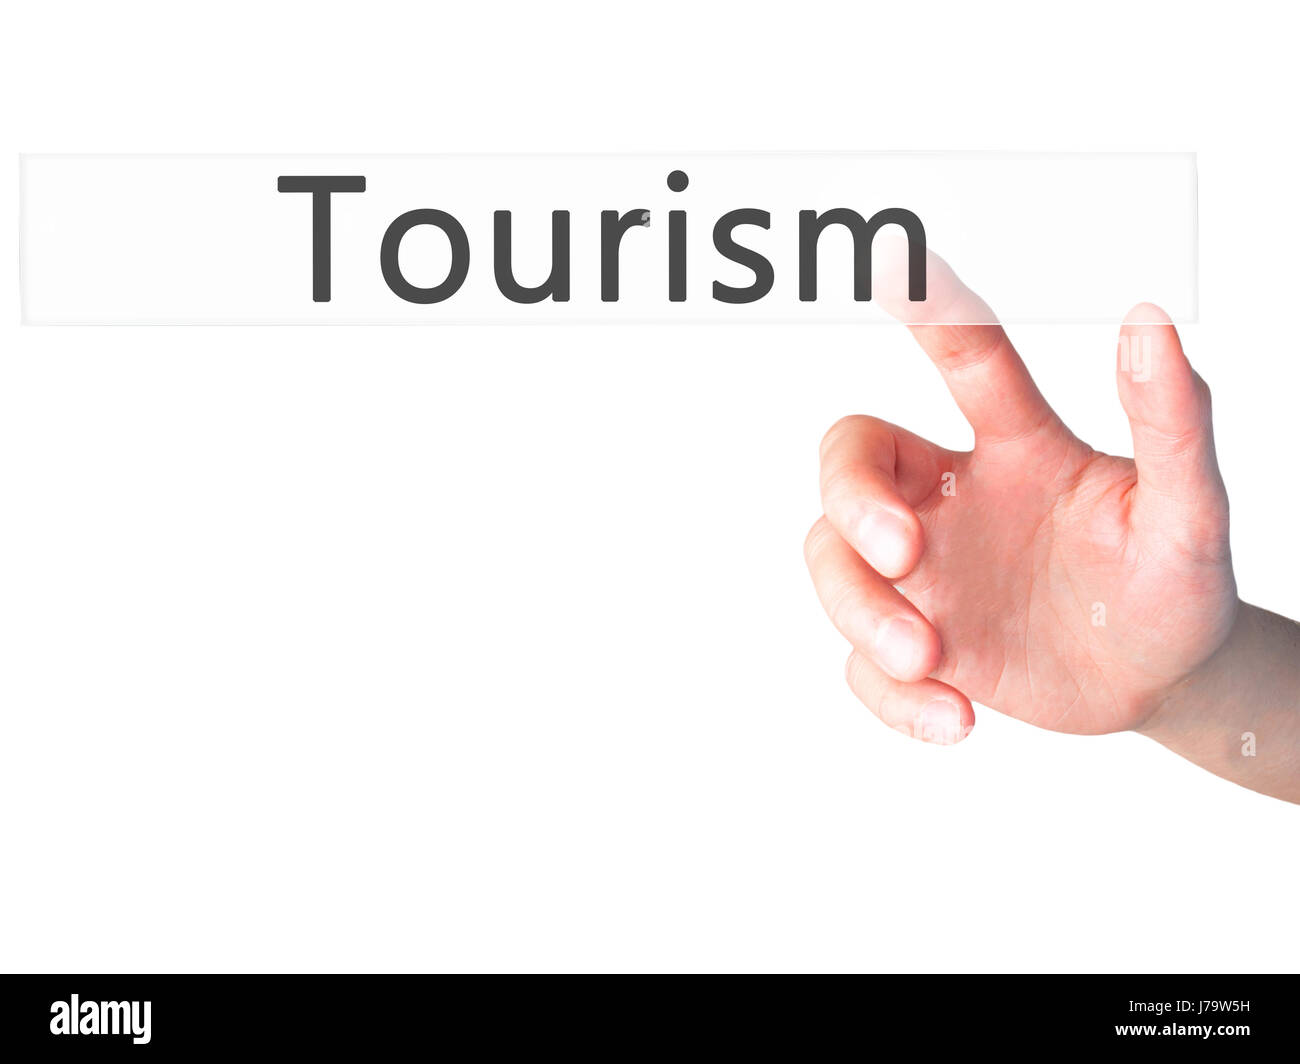 Tourism - Hand pressing a button on blurred background concept . Business, technology, internet concept. Stock Photo - Stock Image